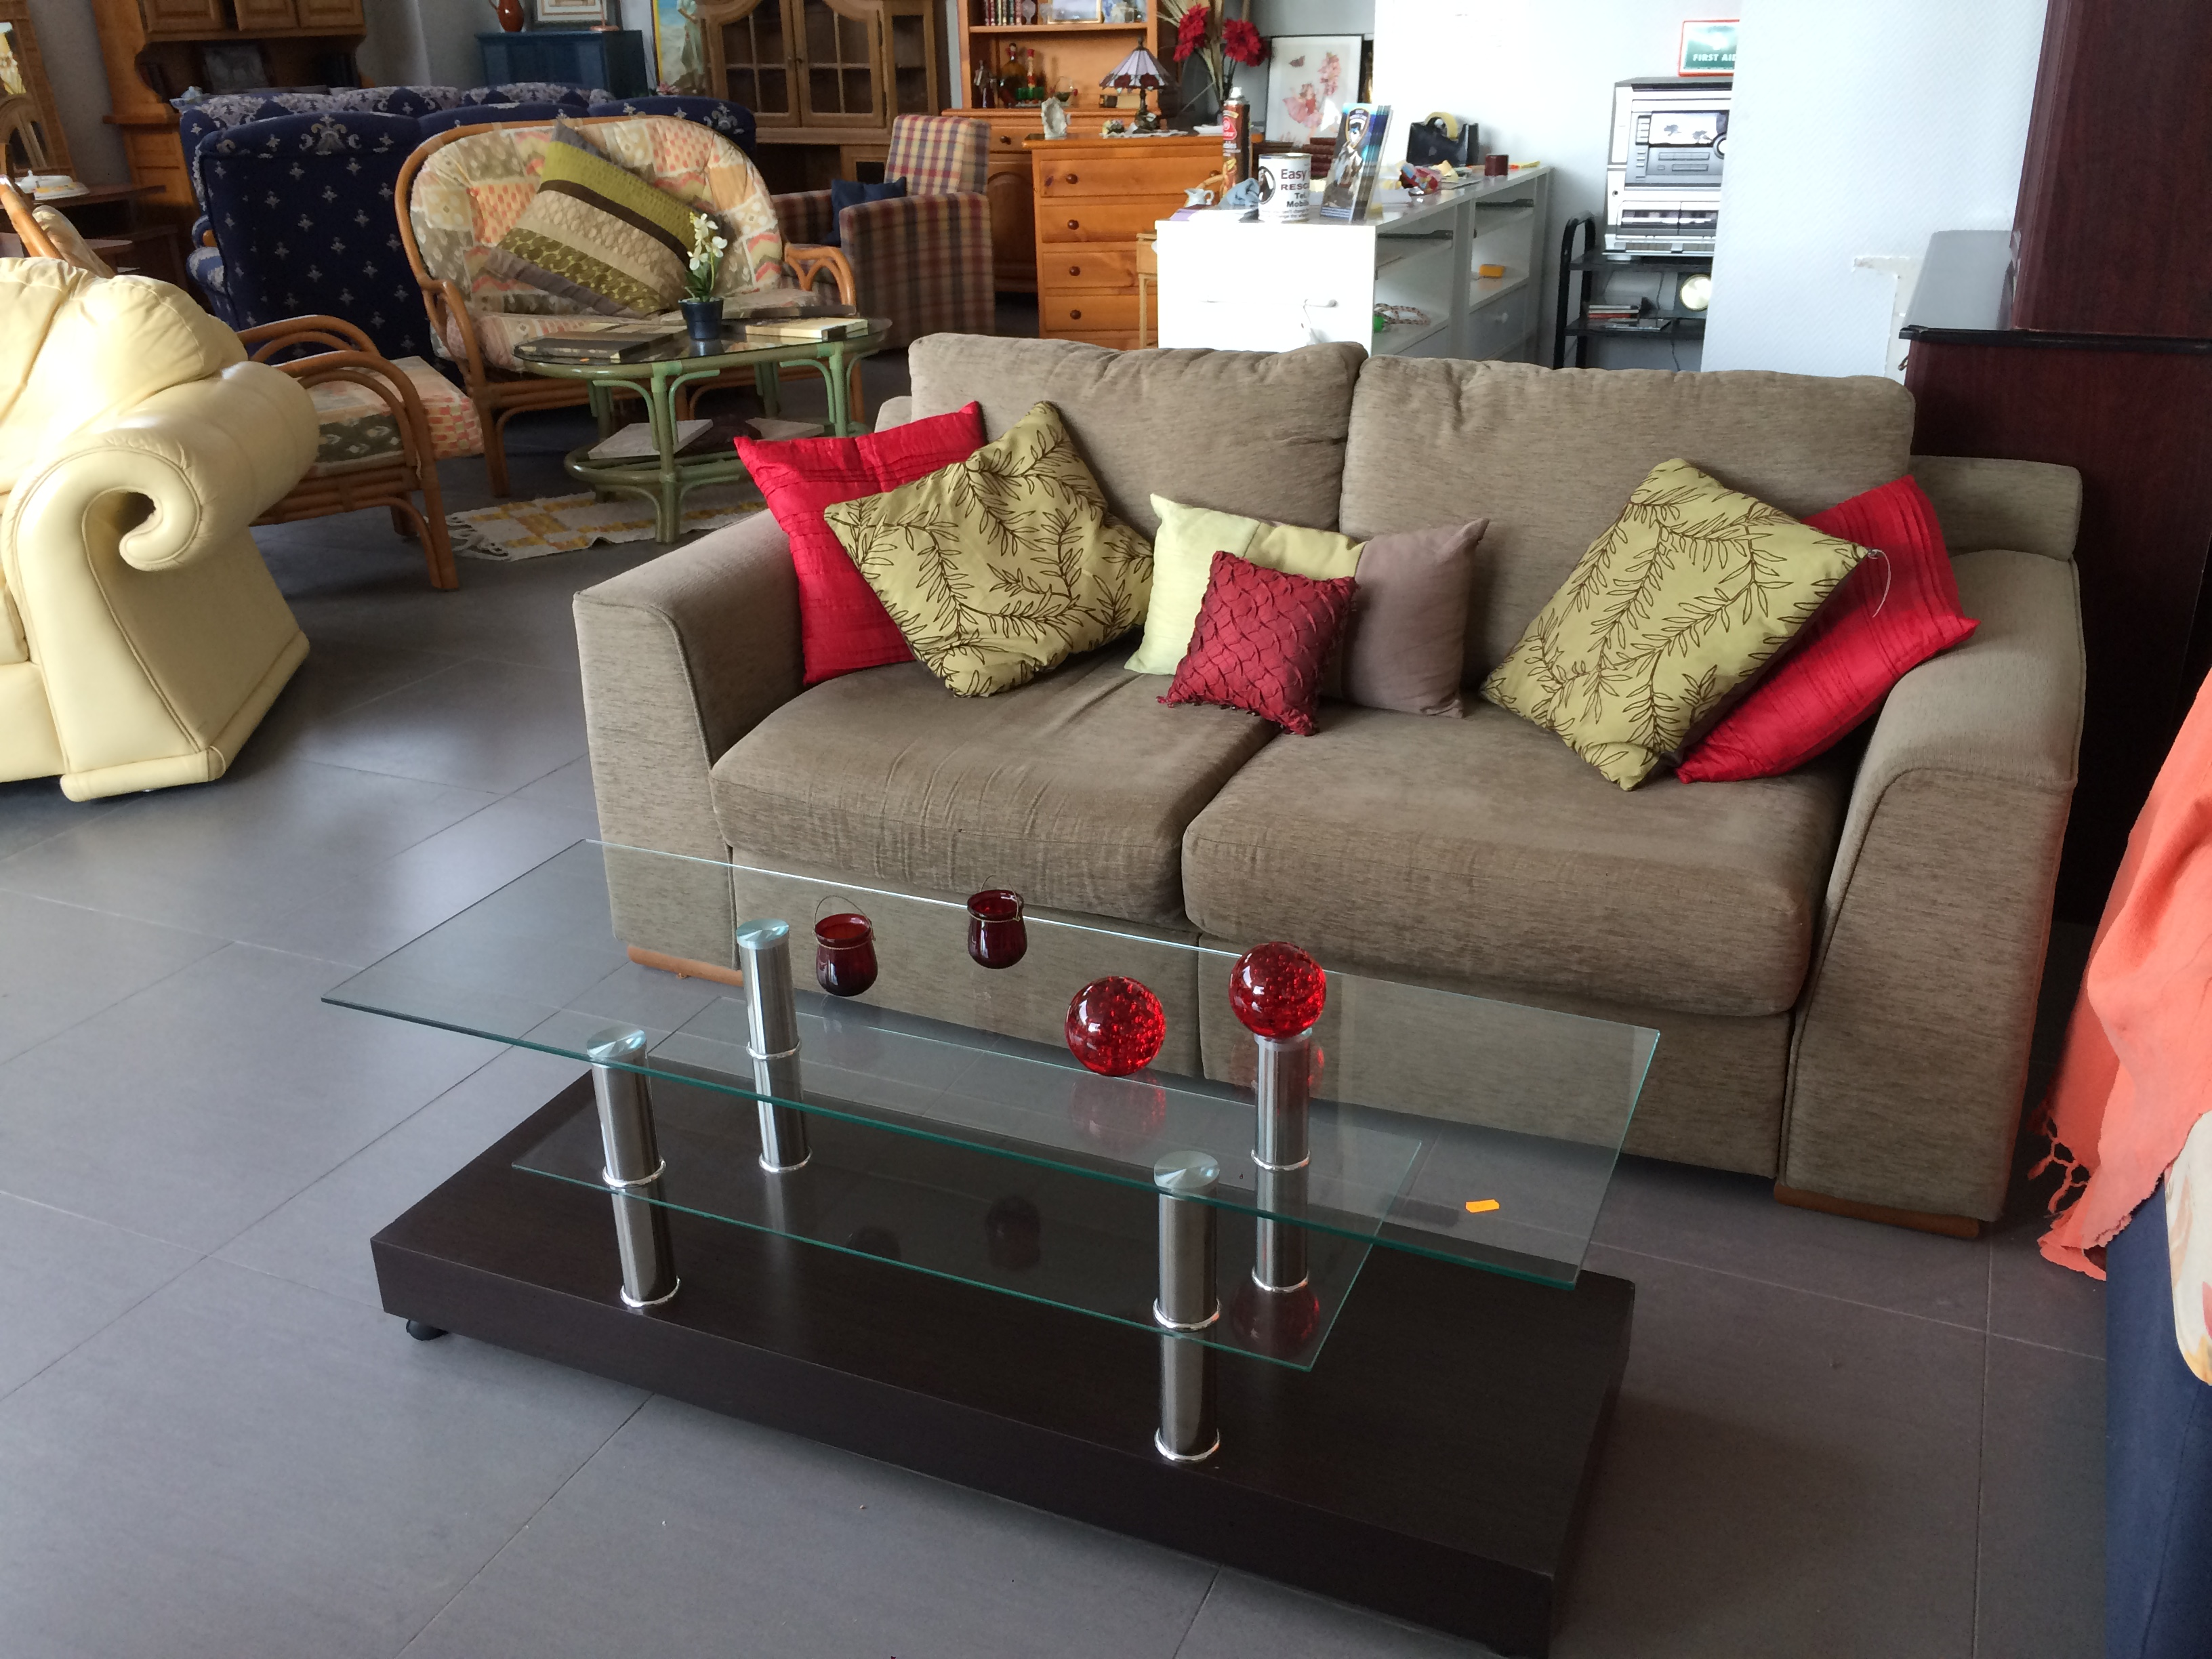 Bag A Bargain At New Gran Alacant Second Hand Furniture Store And